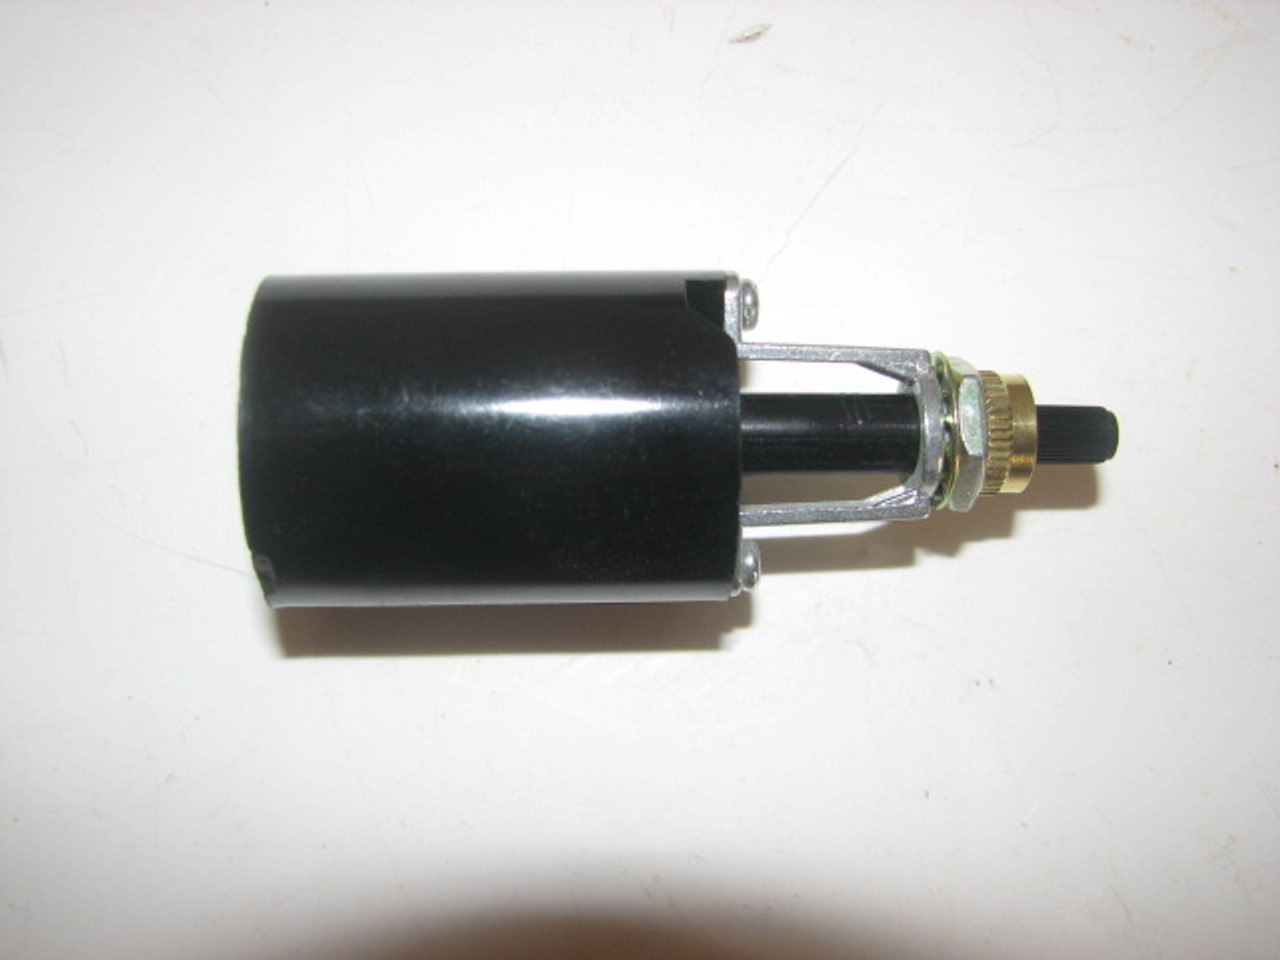 Bakelite Socket with Bottom Switch (CLT065) SIDE VIEW